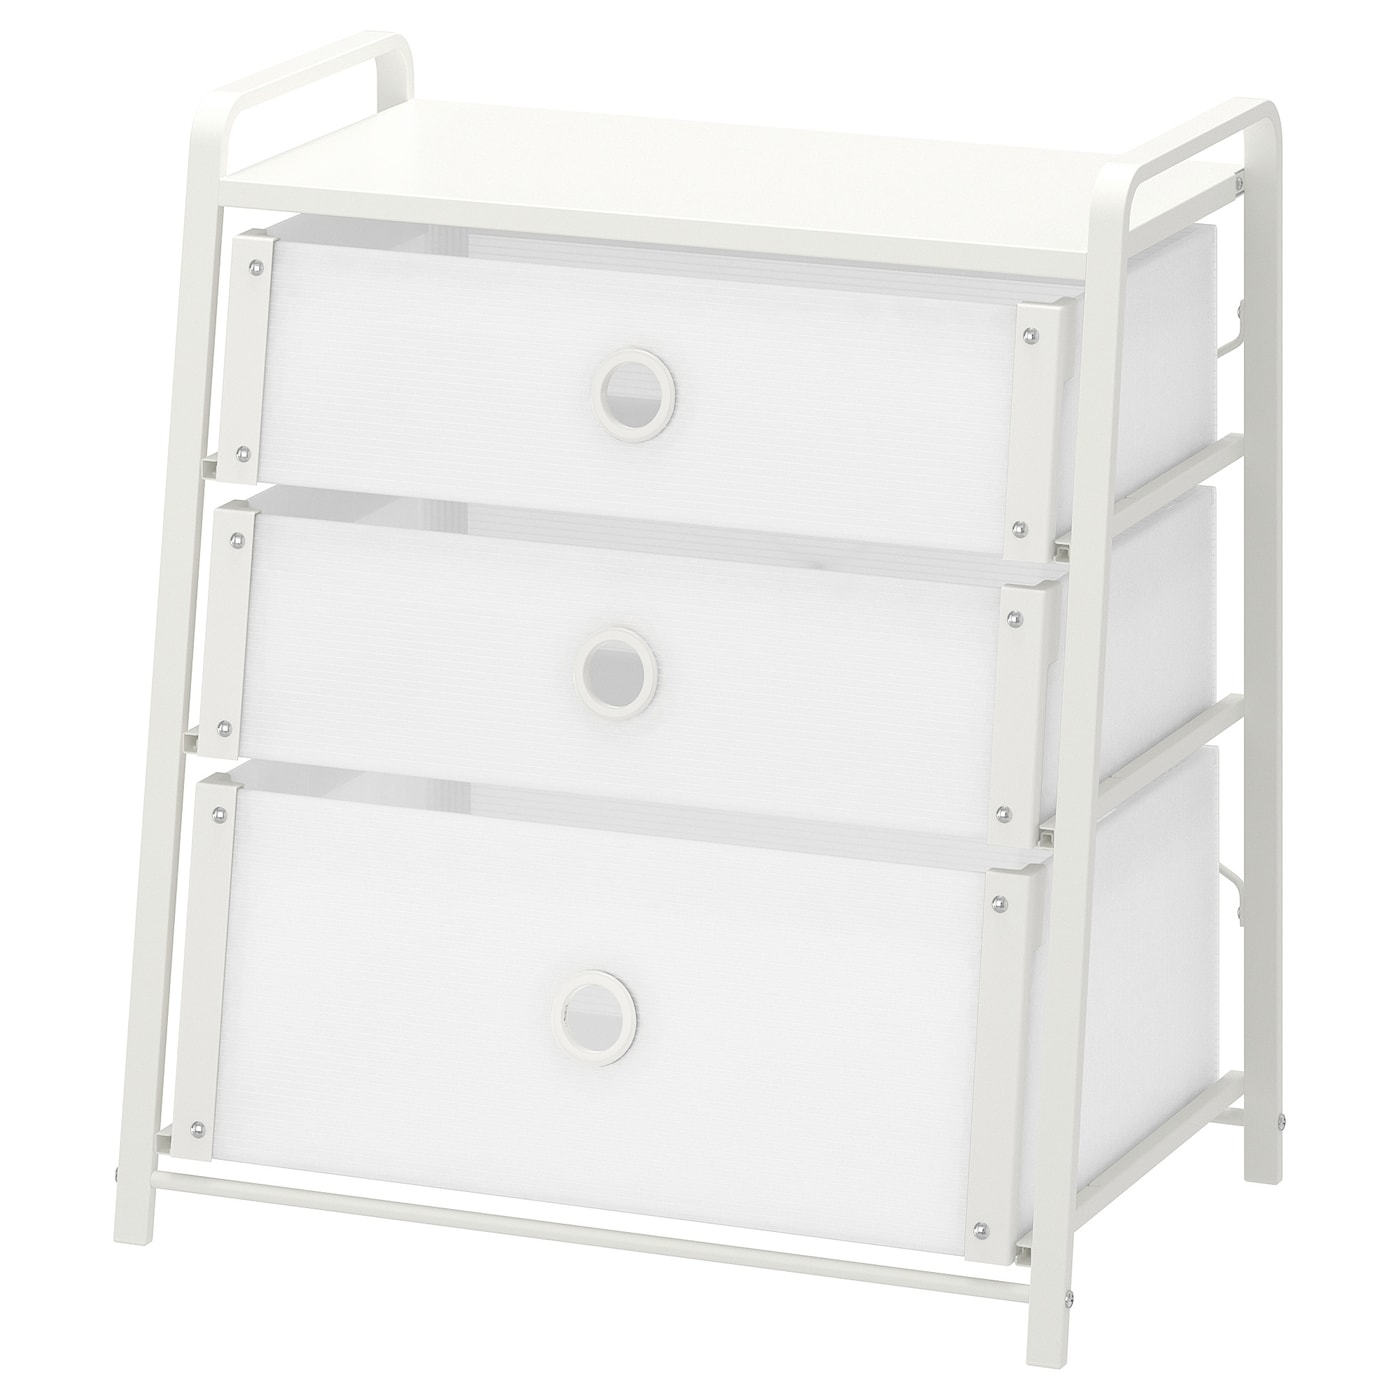 https://www.ikea.com/be/nl/images/products/lote-ladekast-3-lades-wit__0651173_pe706785_s5.jpg